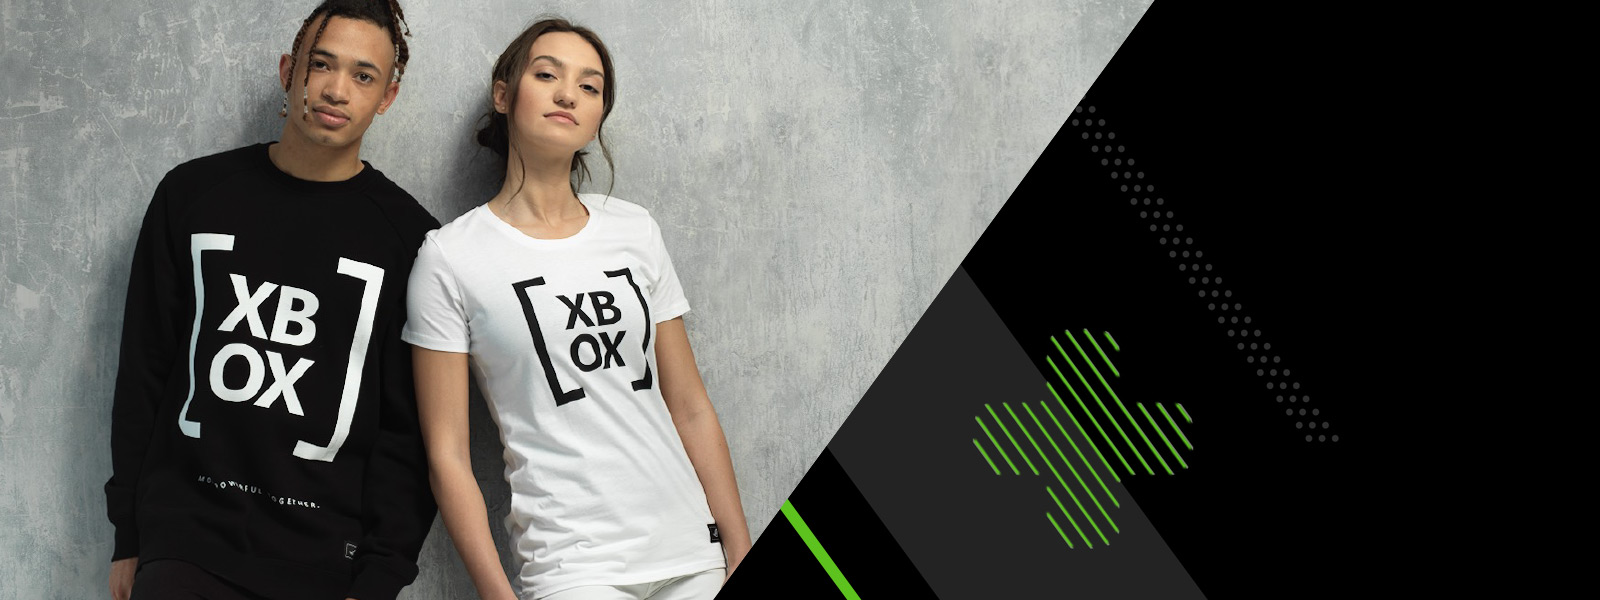 b18447e54dd SHOP NOW. Models wearing official Xbox branded clothing